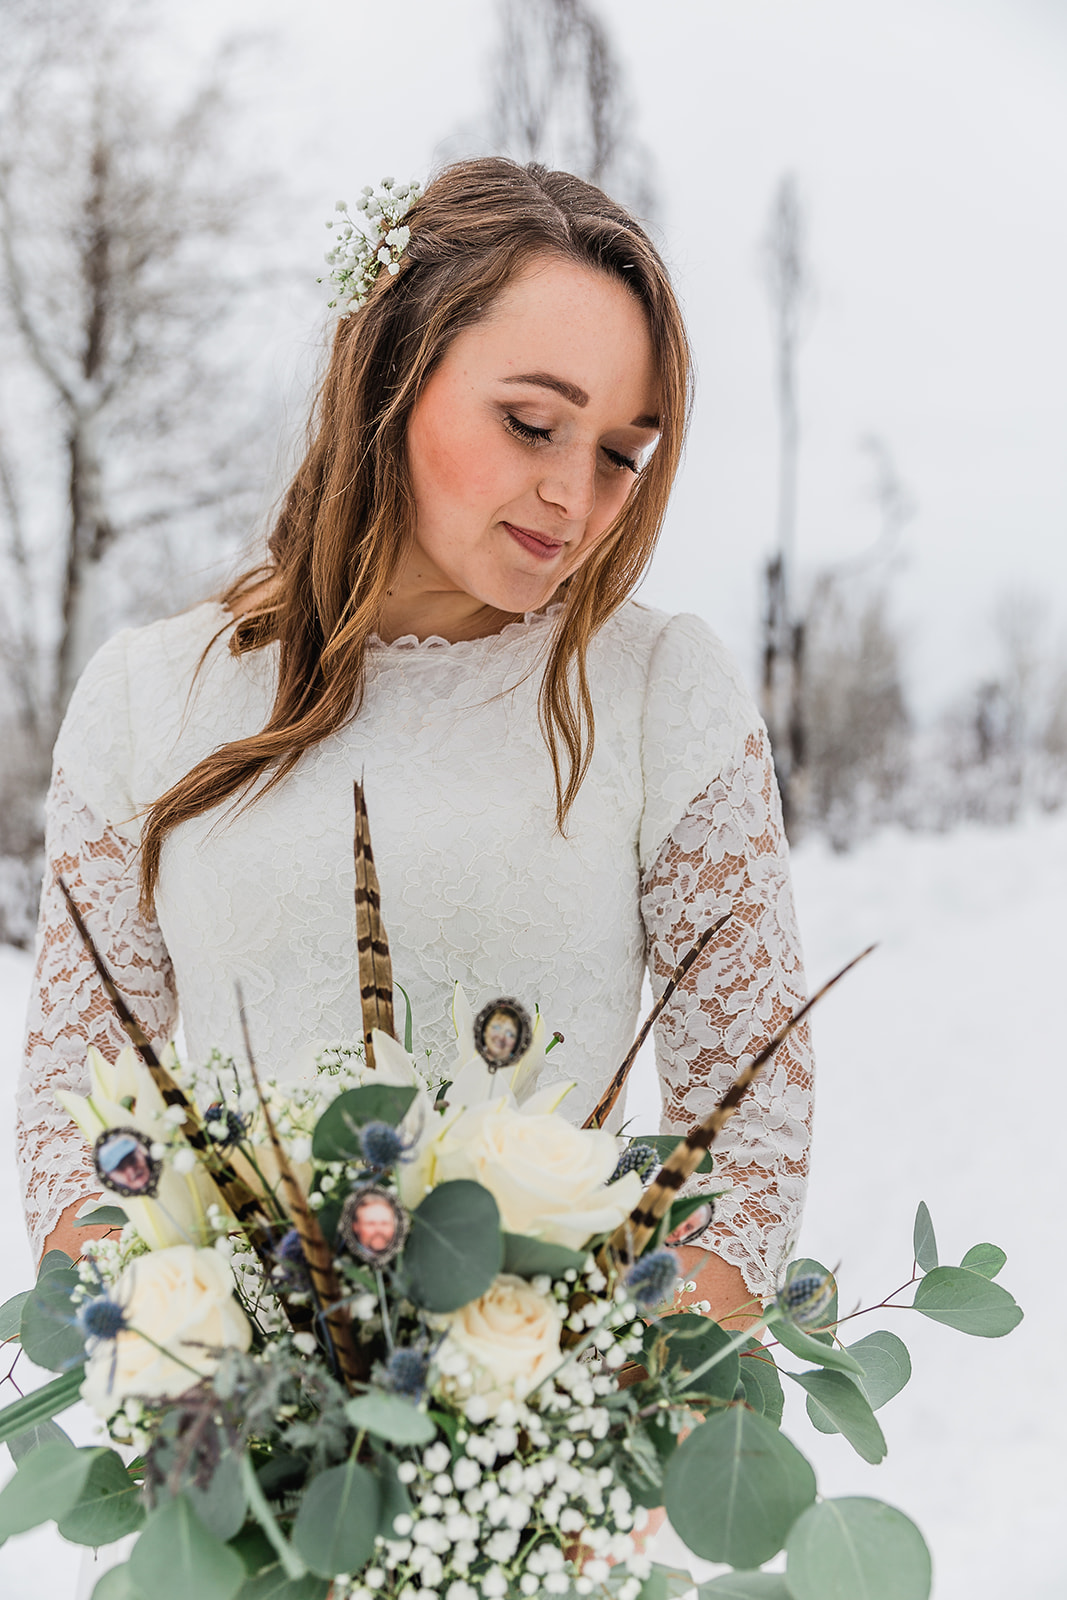 winter bridals white and green bouquet feathers in bouquets inspiration pheasant fethers beautiful modest wedding dress lace sleeves white flowers in her hair romantic bridals just the bride winter scenery professional wedding photography #winterwedding #formals #tony'sgrove #cachevalley #snowcoveredtrees #bellaalderphotography #professionalphotographer #winterwonderland #couplegoals #weddingattire